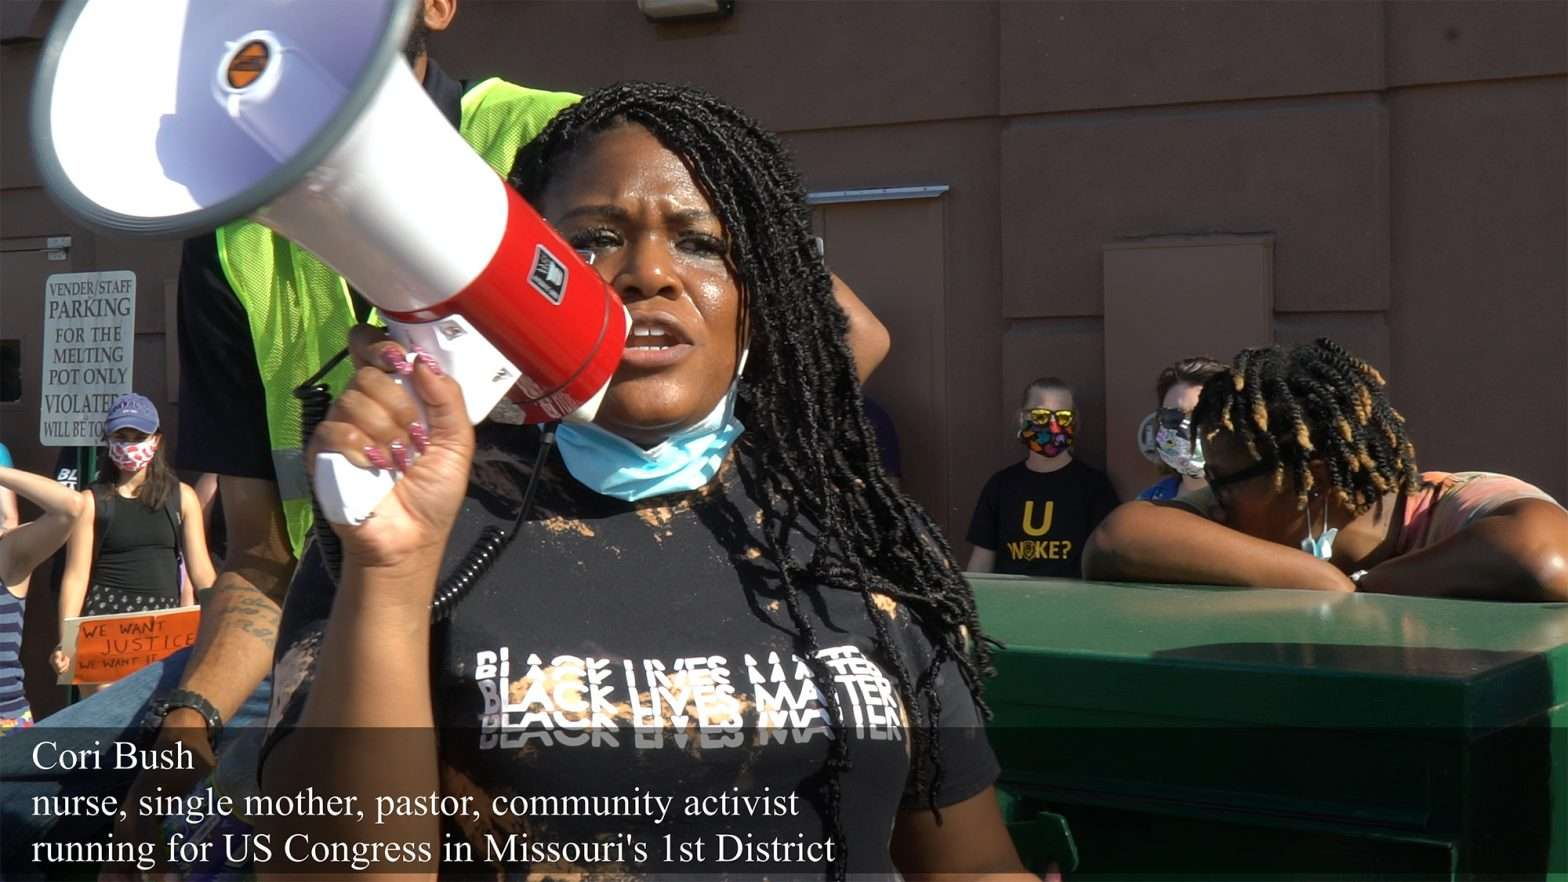 Cori Bush speaks at Delmar Dived Protest known as red-lining in University City. credit craig currie